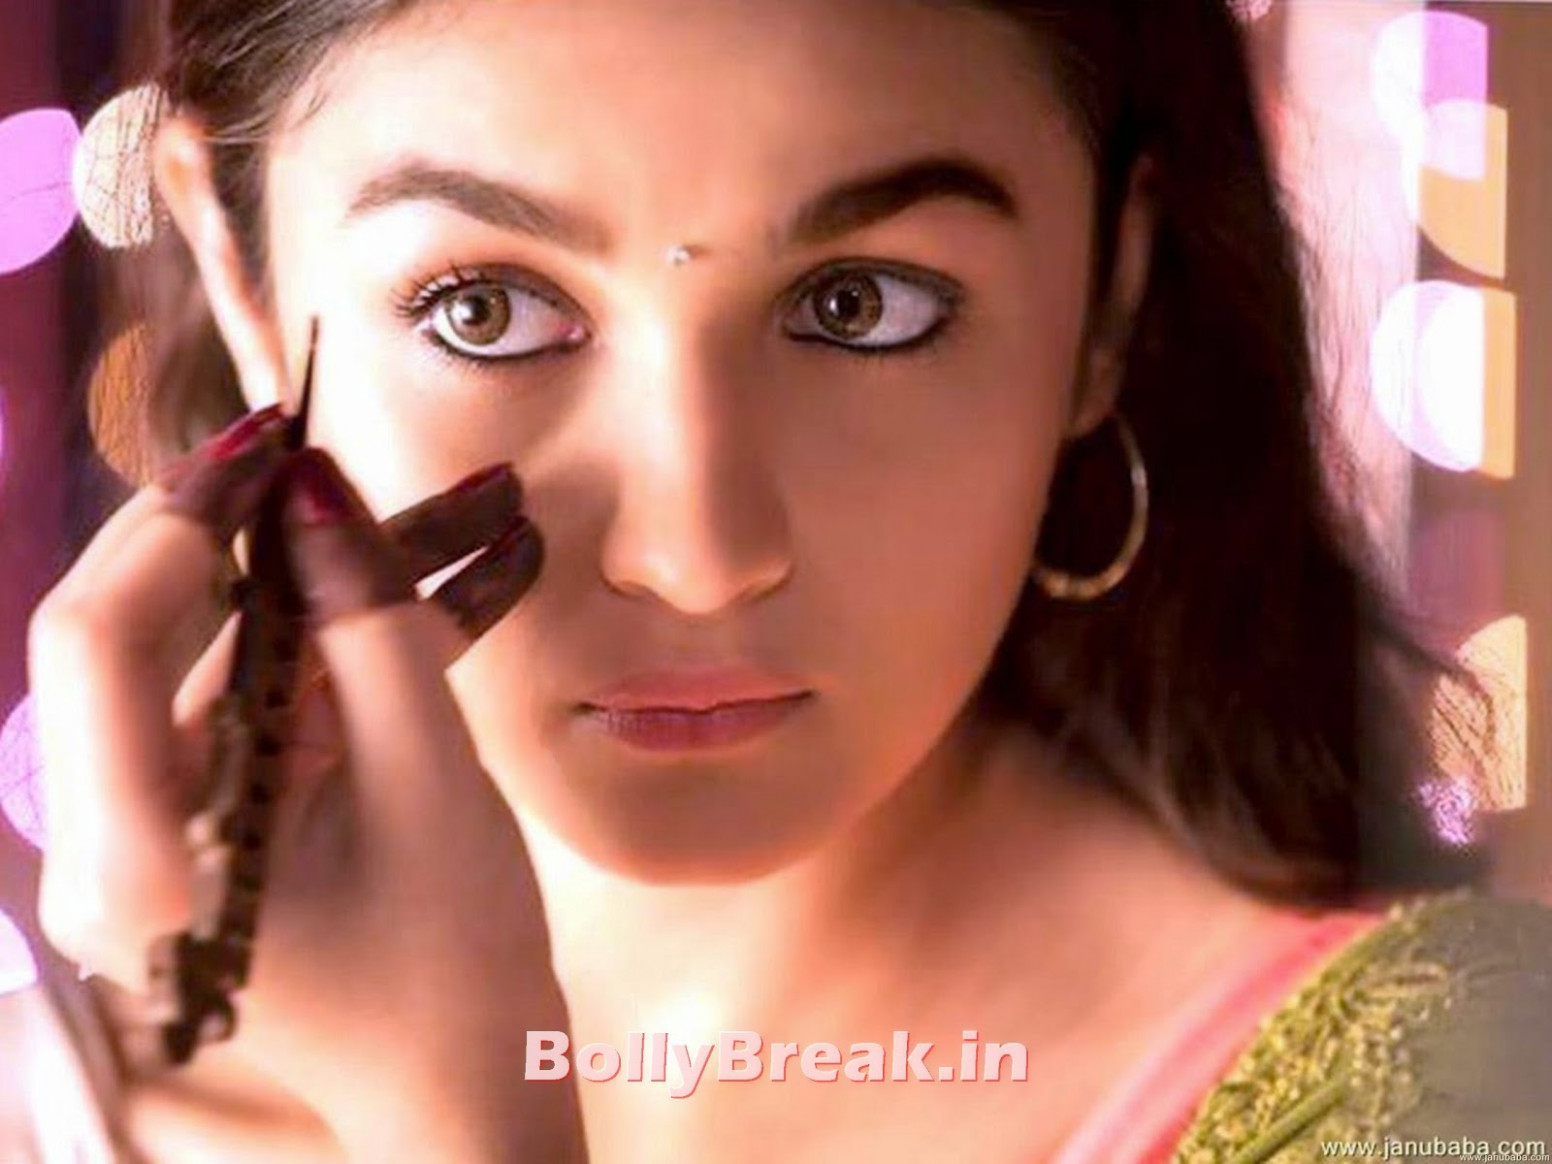 Makeup Room Pics of Bollywood Actresses - 12 Pics